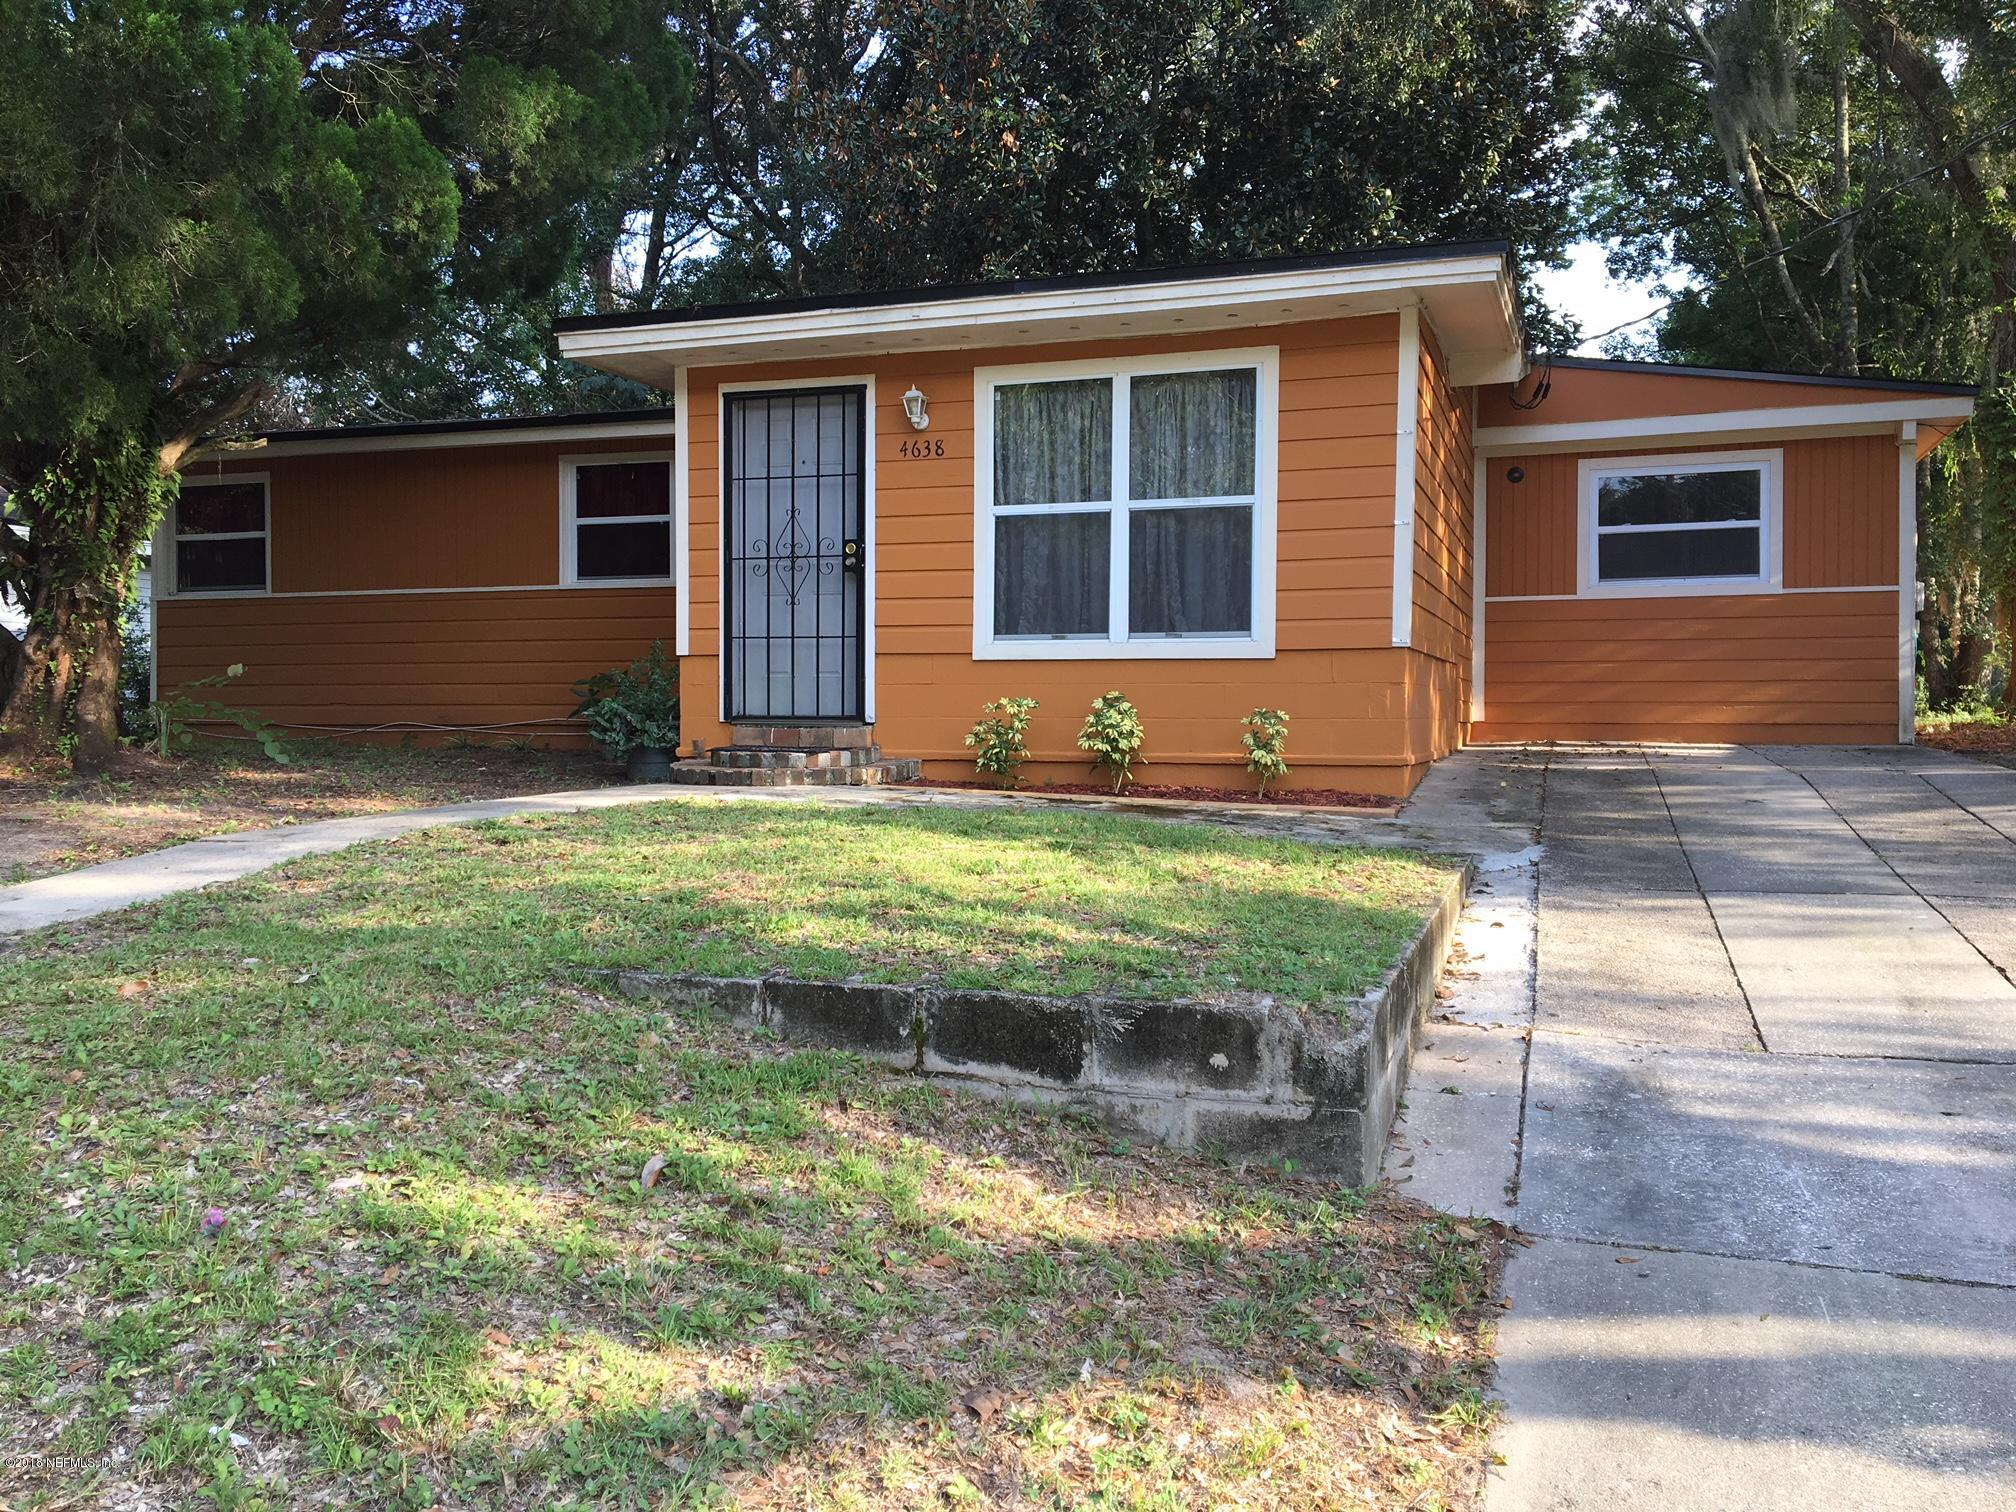 4638 SUFFOLK, JACKSONVILLE, FLORIDA 32208, 4 Bedrooms Bedrooms, ,2 BathroomsBathrooms,Residential - single family,For sale,SUFFOLK,953550